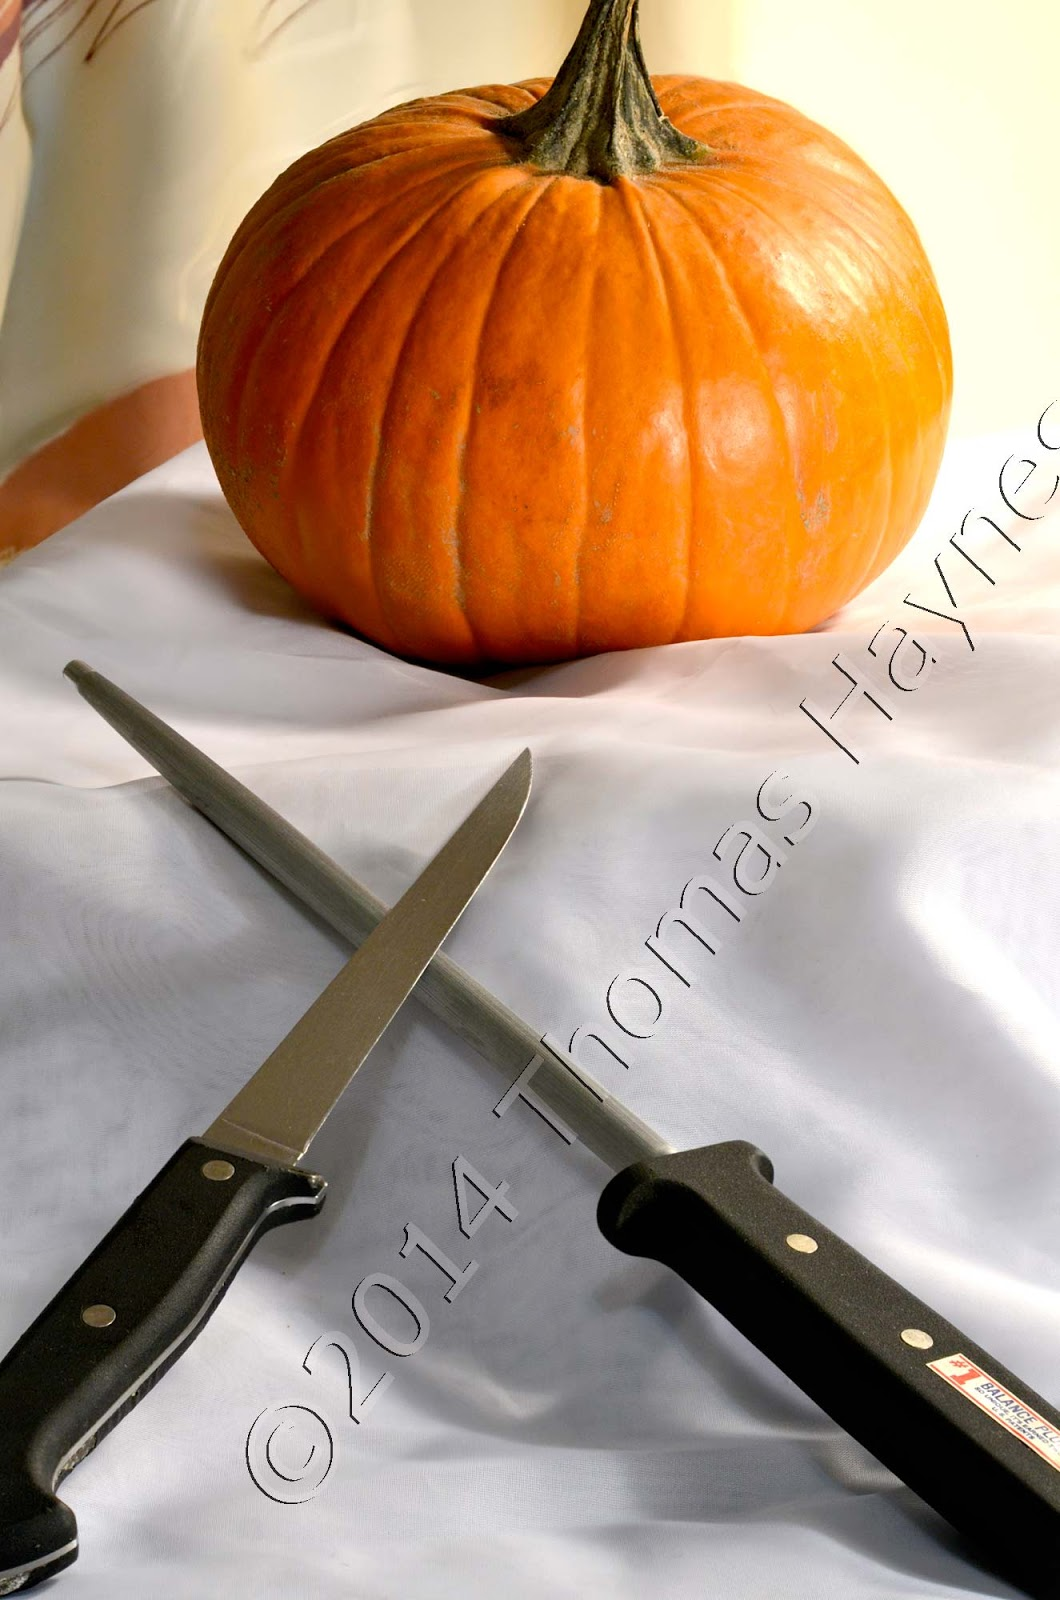 pumpkin with knife and sharpening steel